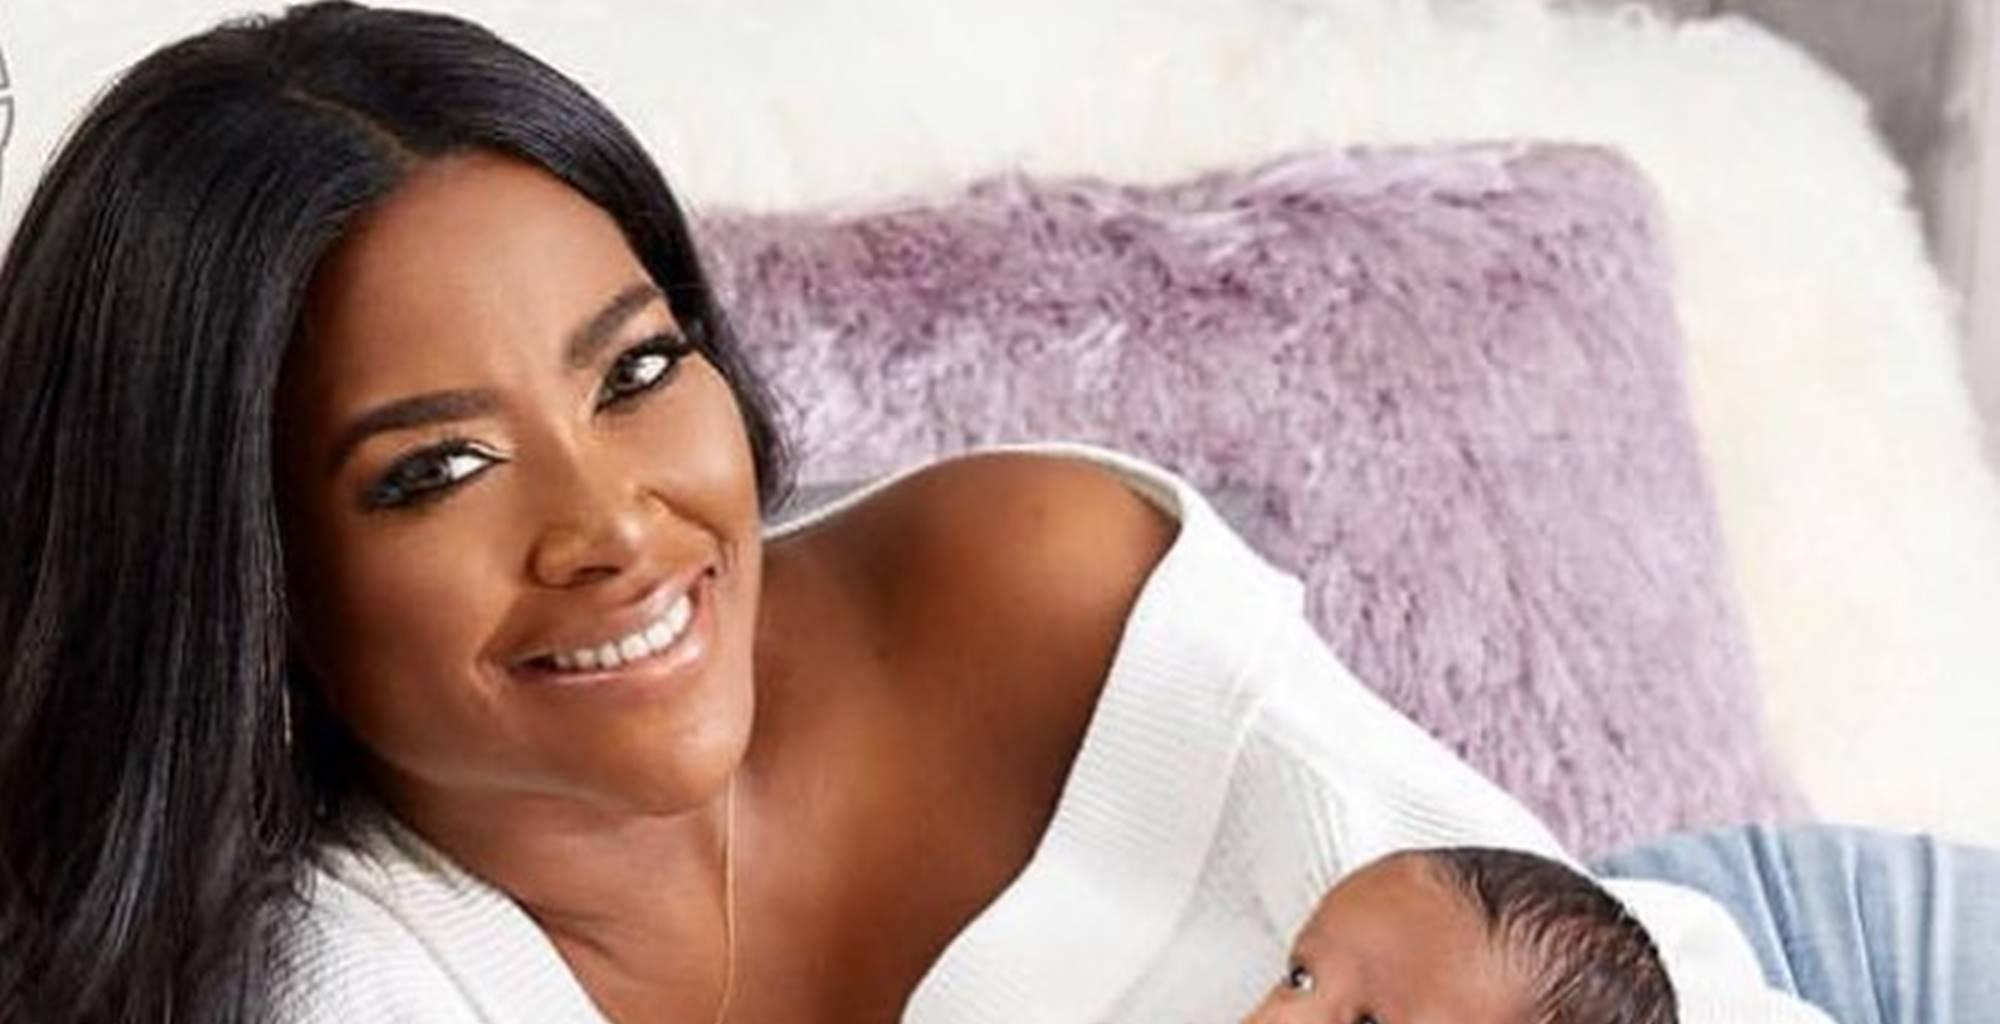 Kenya Moore's Snap Back Is Real: Check Out Her Latest Video In Which She Rocks A Flawless Body